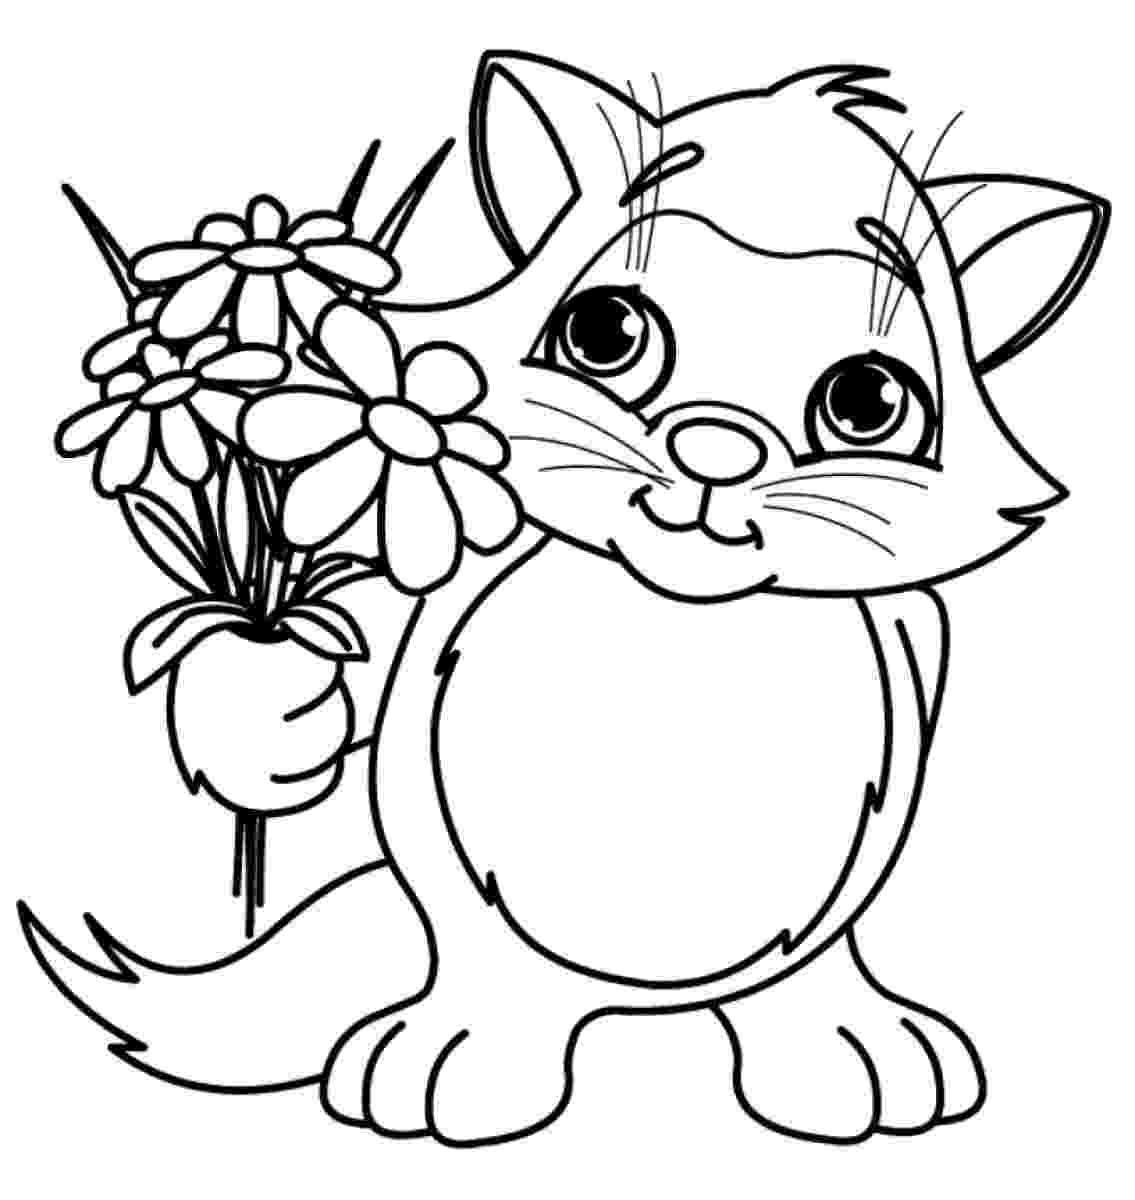 free flower pictures to print and color free printable flower coloring pages for kids best to color free and pictures flower print